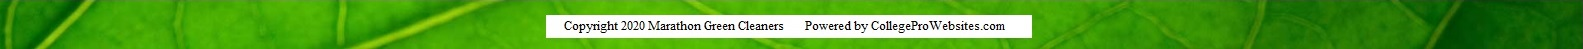 copyright footer green leaf